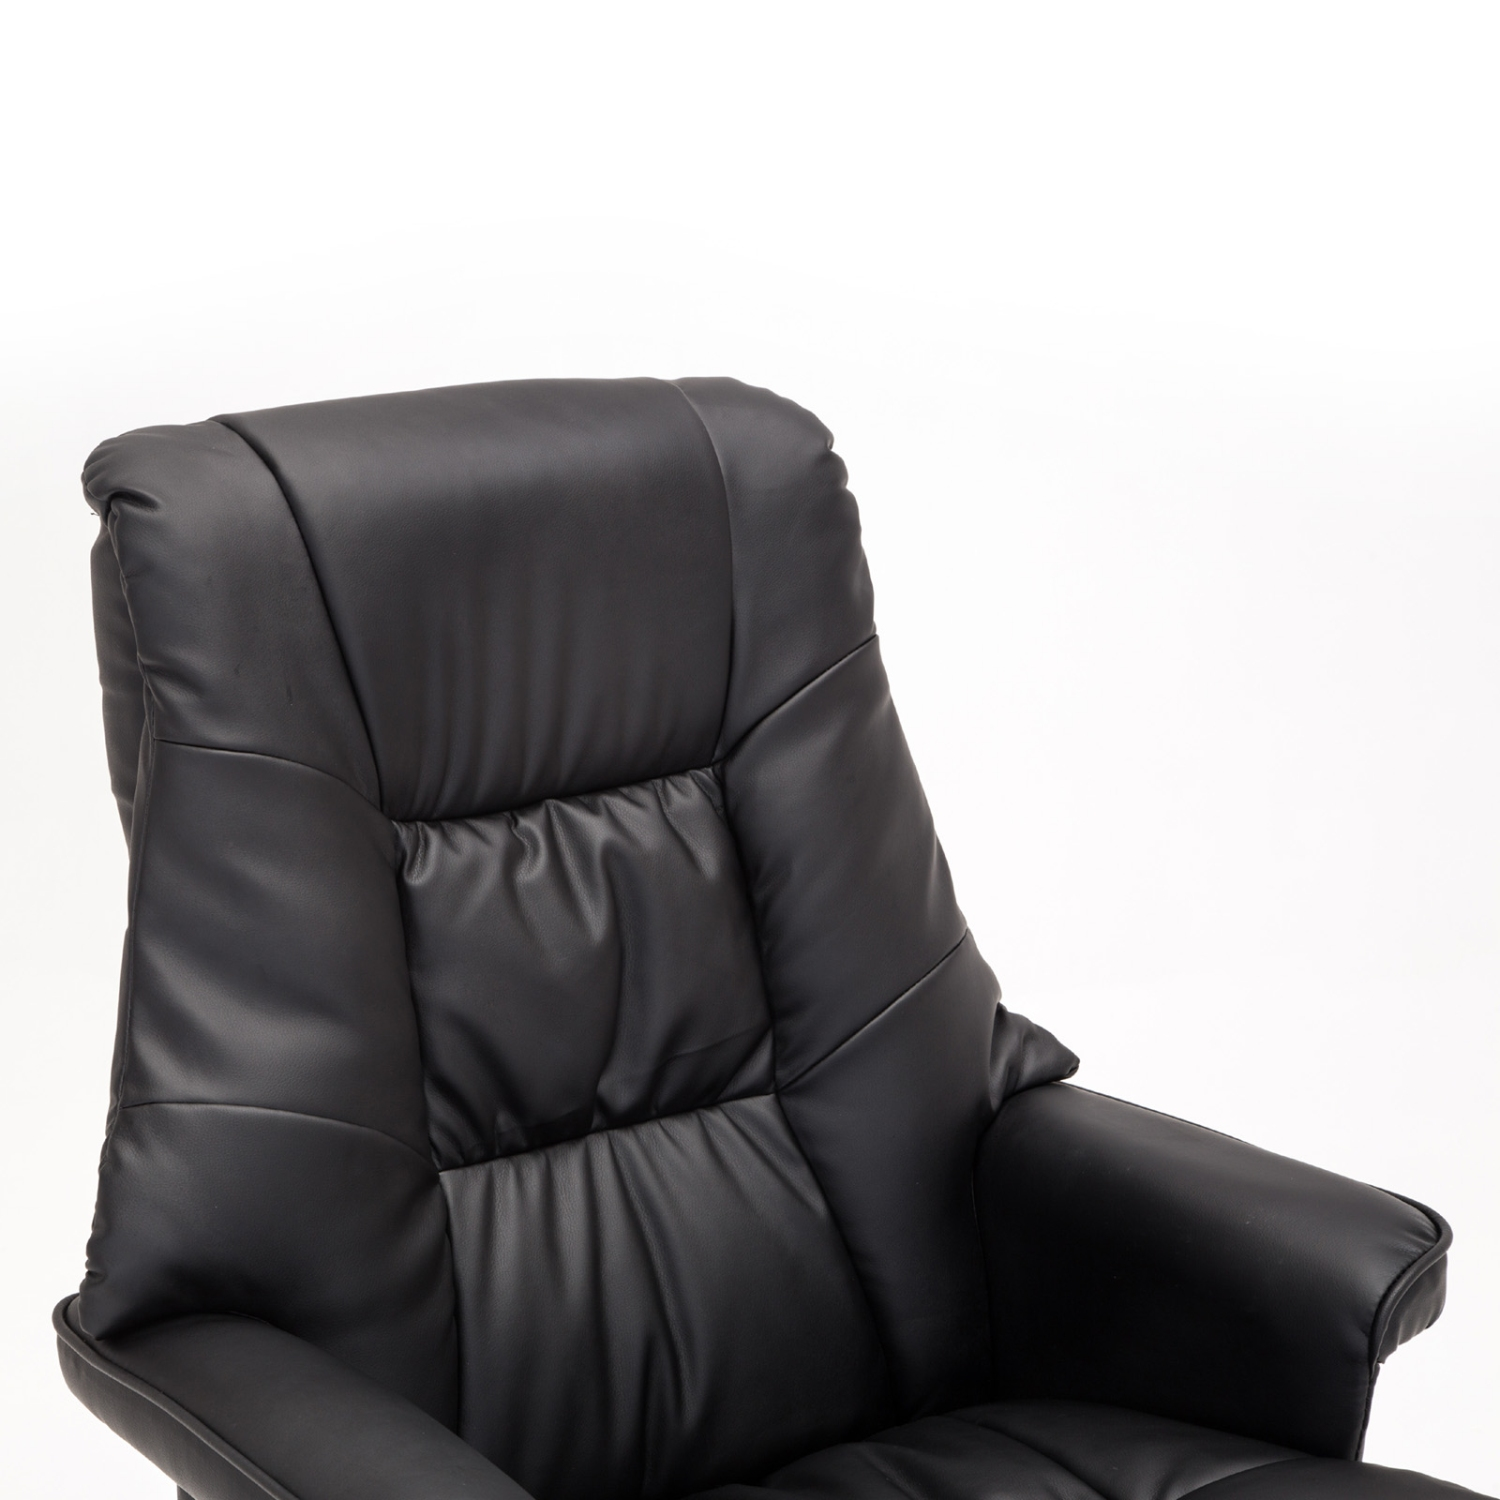 black massage recliner chair leather with foot stool swivel armchair